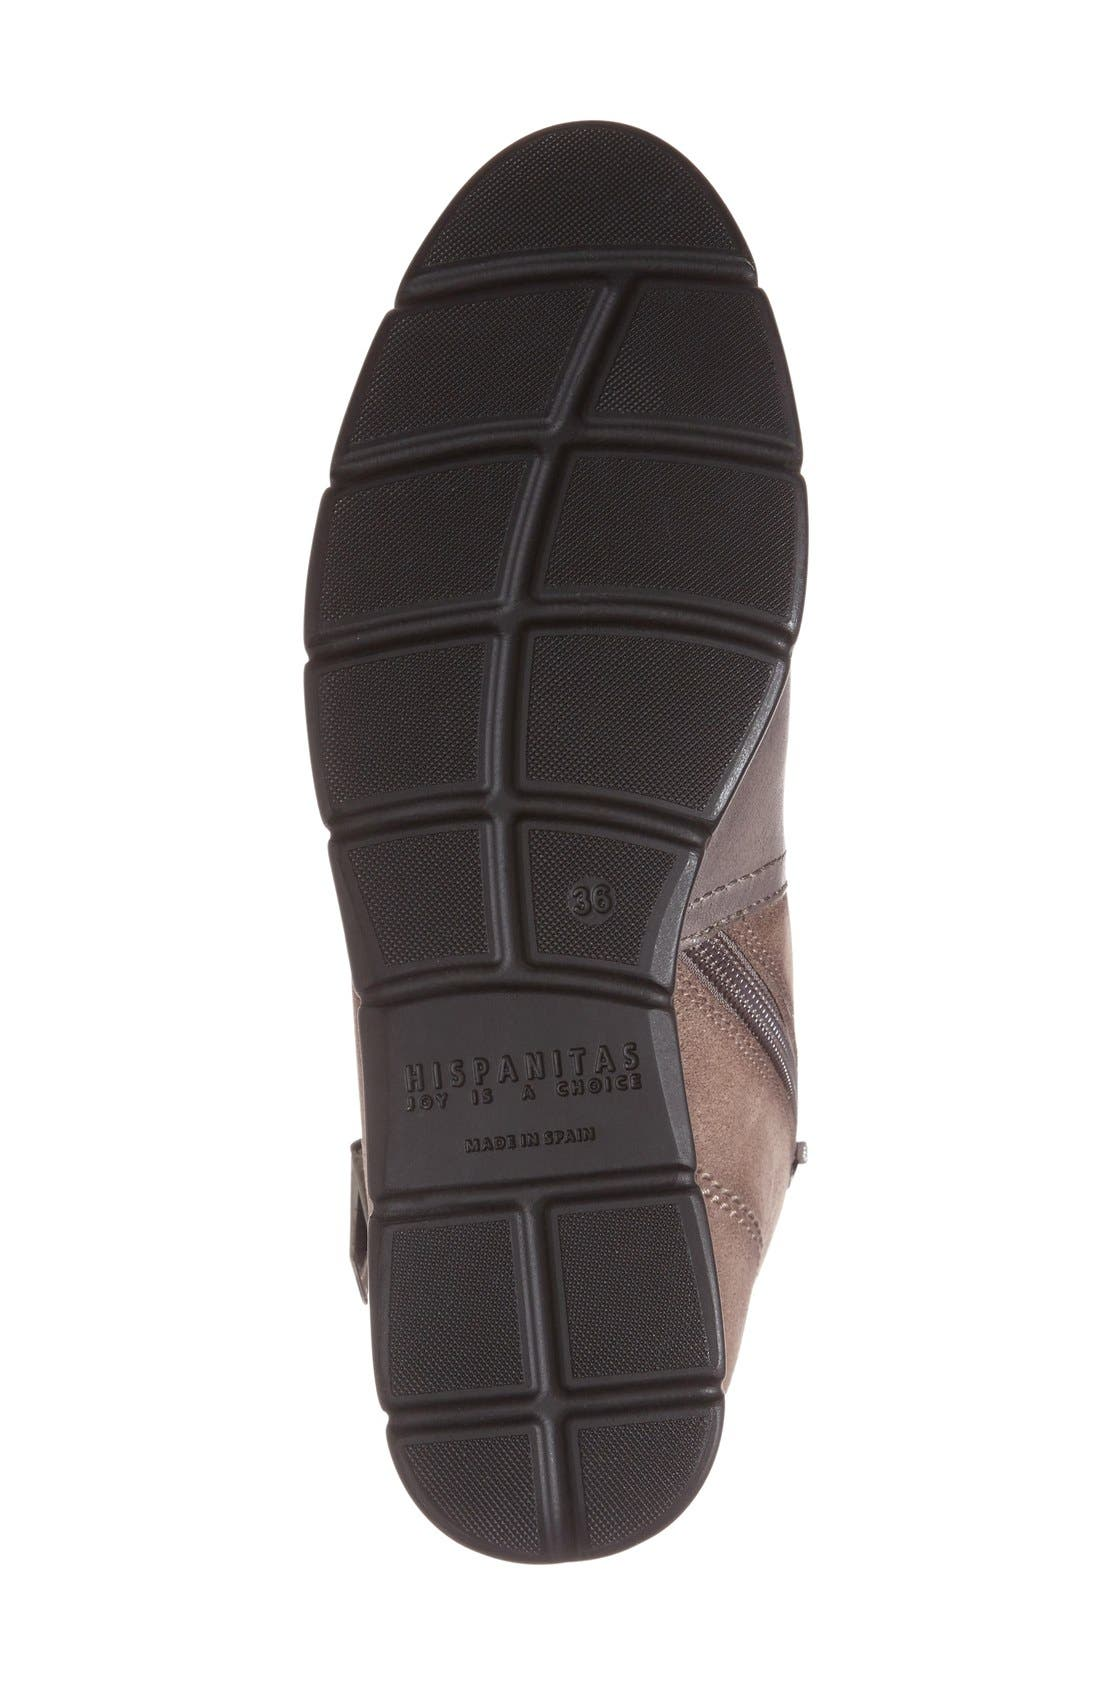 'Langley' Boot,                             Alternate thumbnail 4, color,                             260